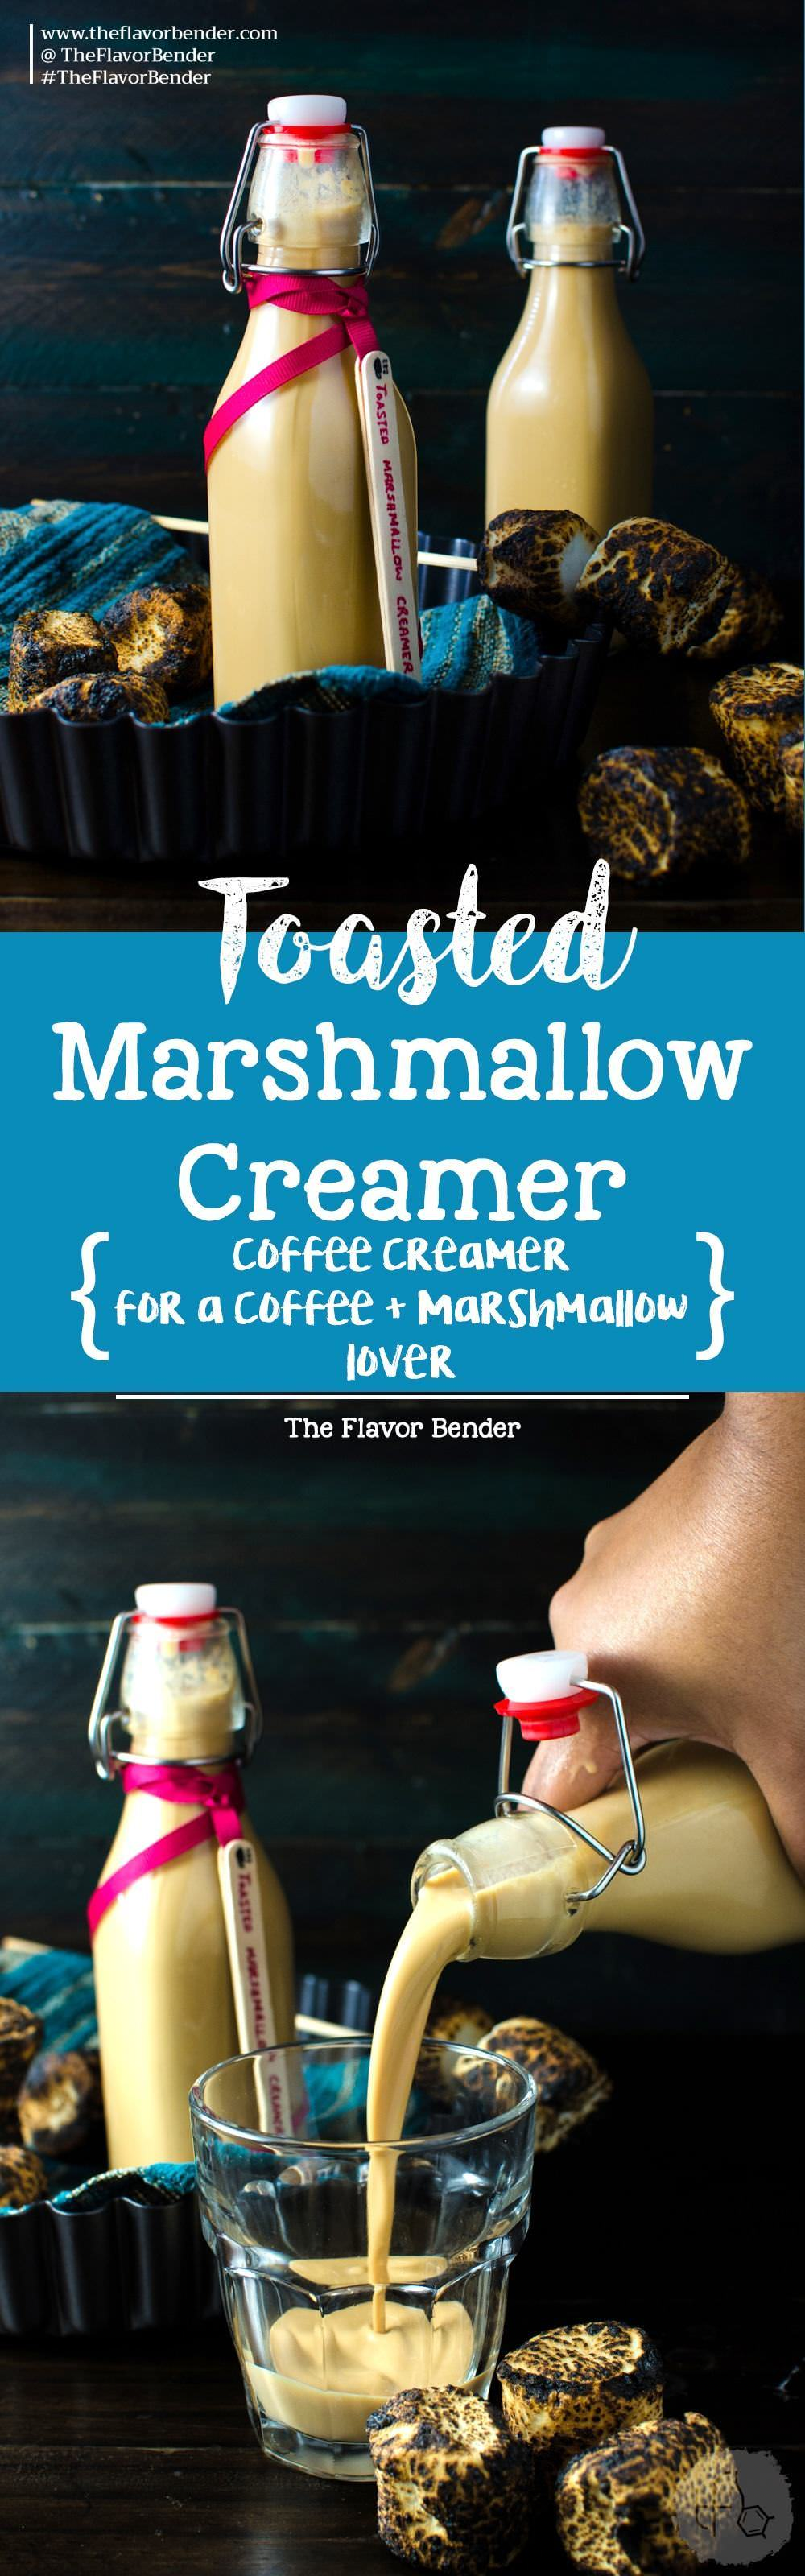 Homemade Toasted Marshmallow Creamer - A delicious, flavorful and EASY Toasted Marshmallow Coffee Creamer to flavor your morning coffees or even make cocktails! Makes an excellent gift to the coffee lover in your family! Plus it's Dairy Free Friendly too. Get the recipe from theflavorbender.com Marshmallow | Toasted Marshmallow | Coffee Creamers | Creamers | Holiday Gifts | Caramel |